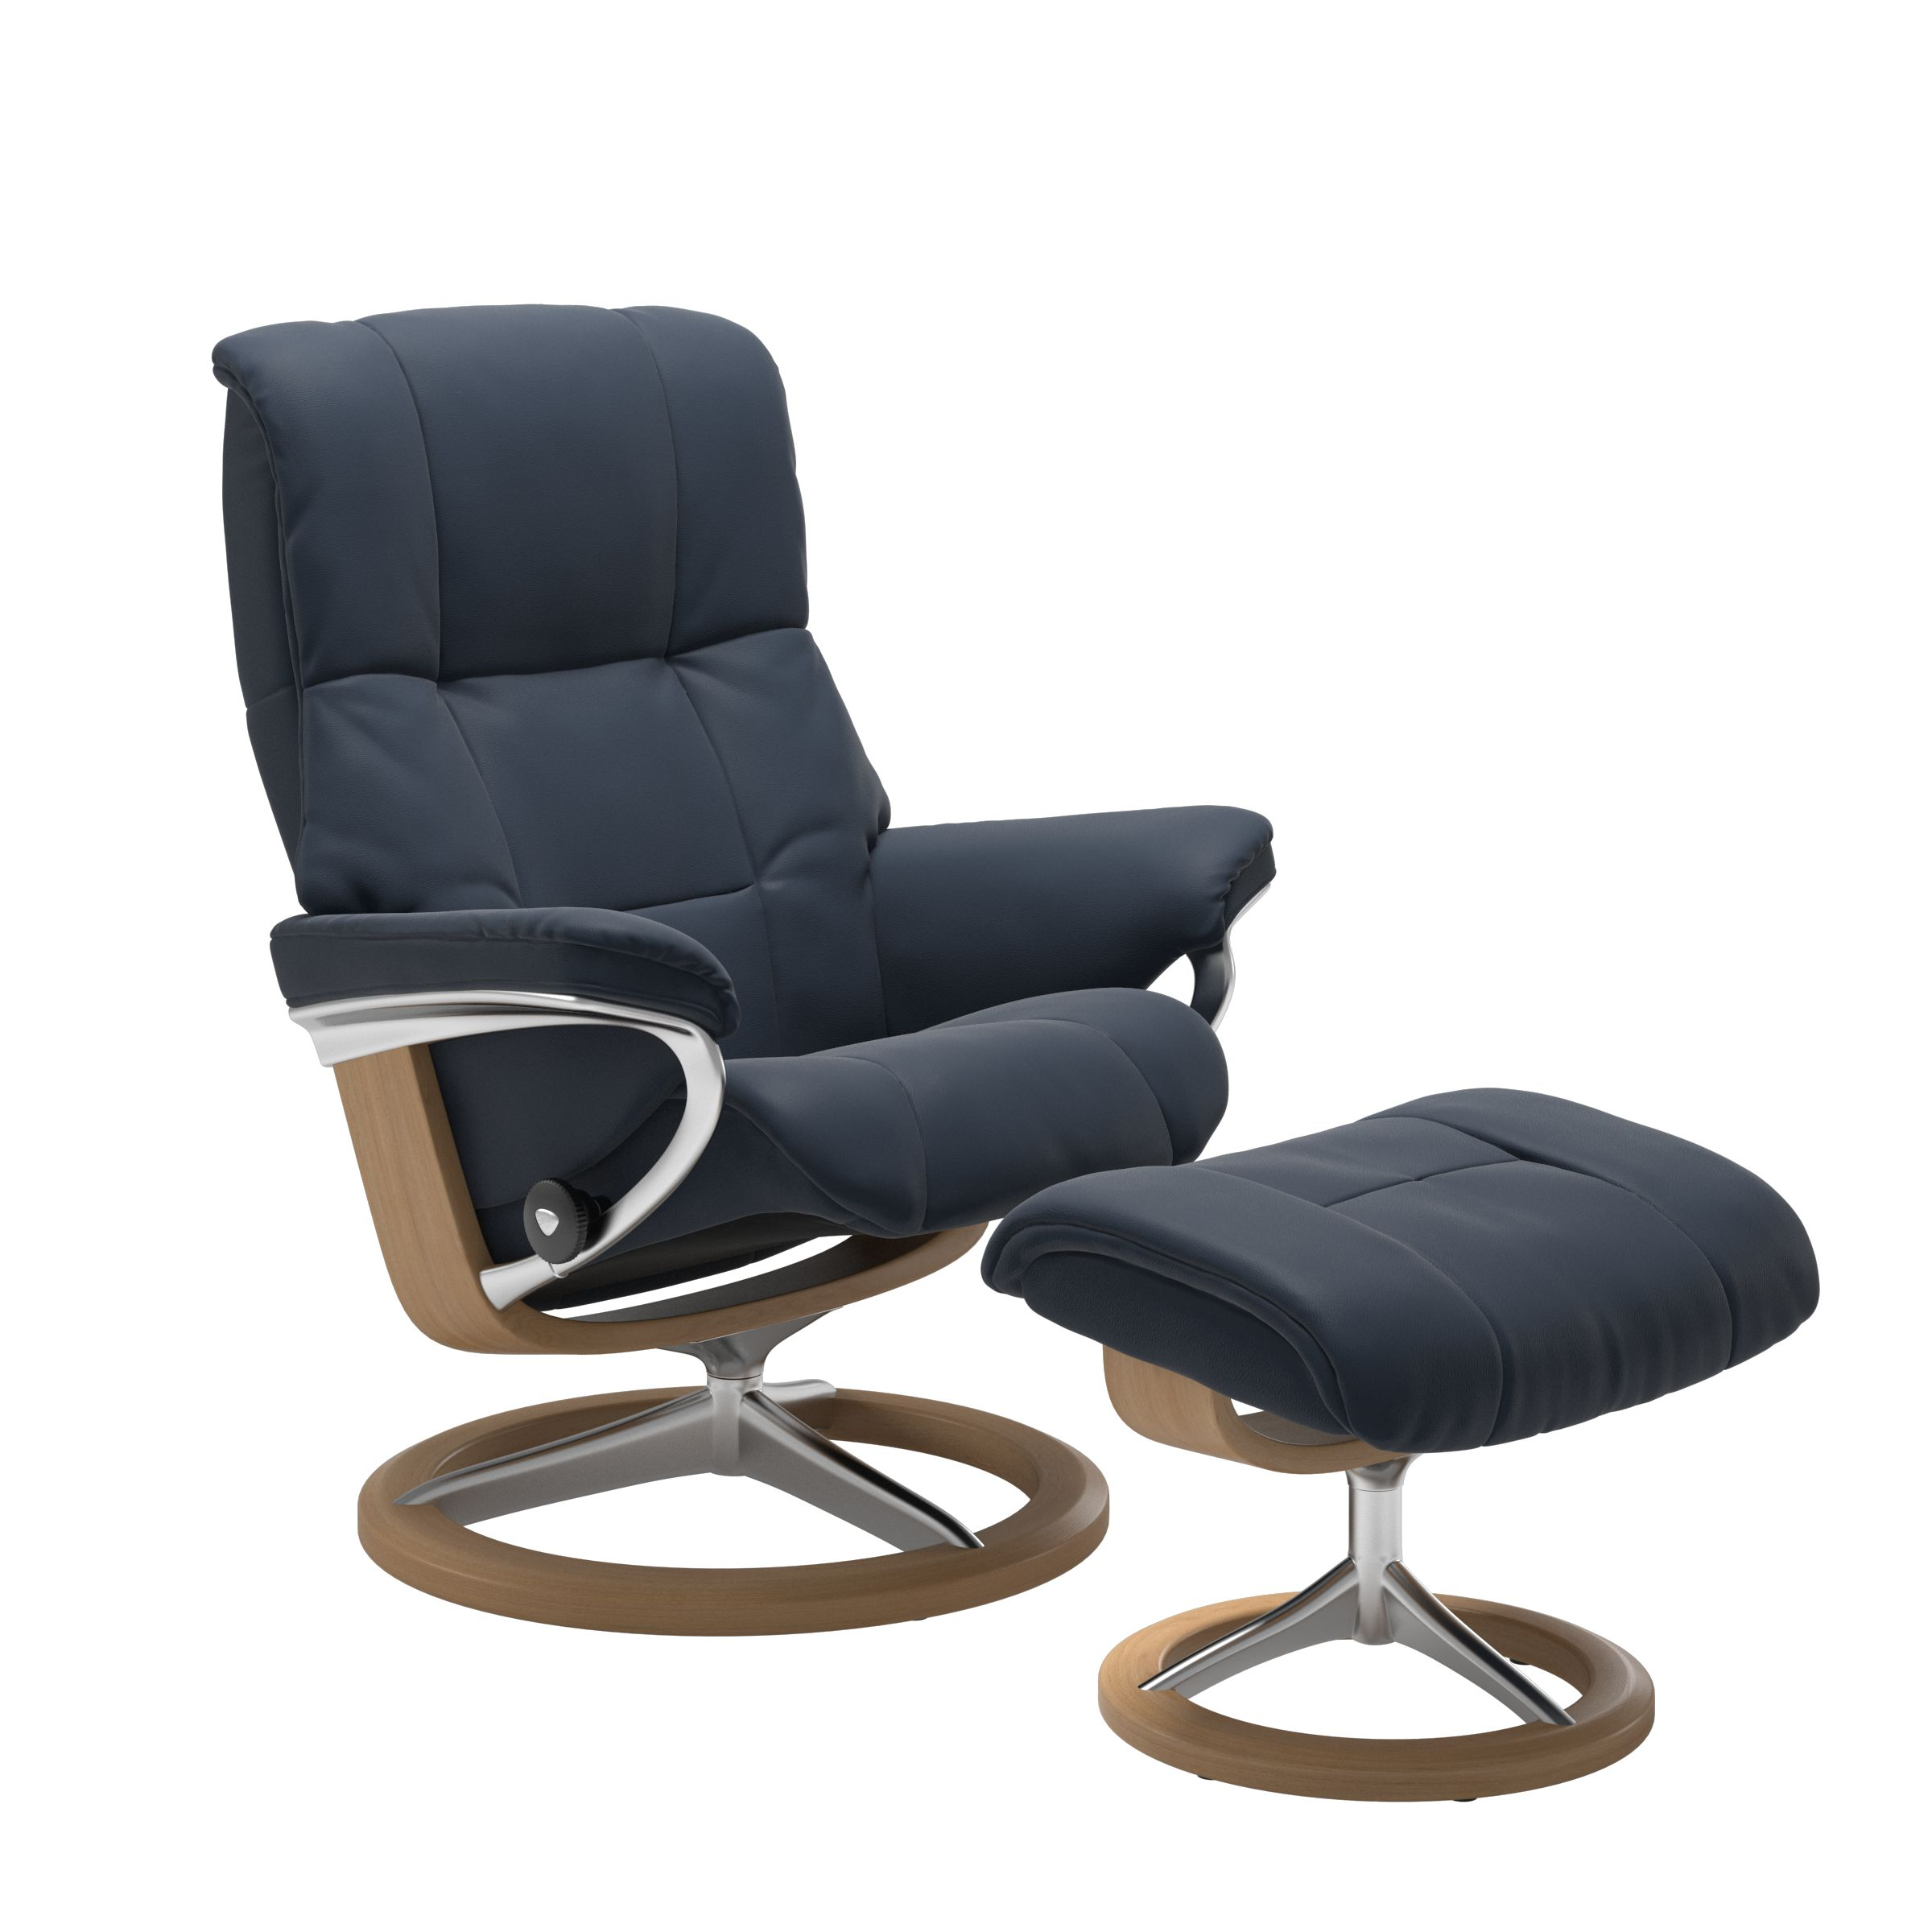 Stressless Sessel Günstig Kaufen Mayfair Stressless Relaxsessel